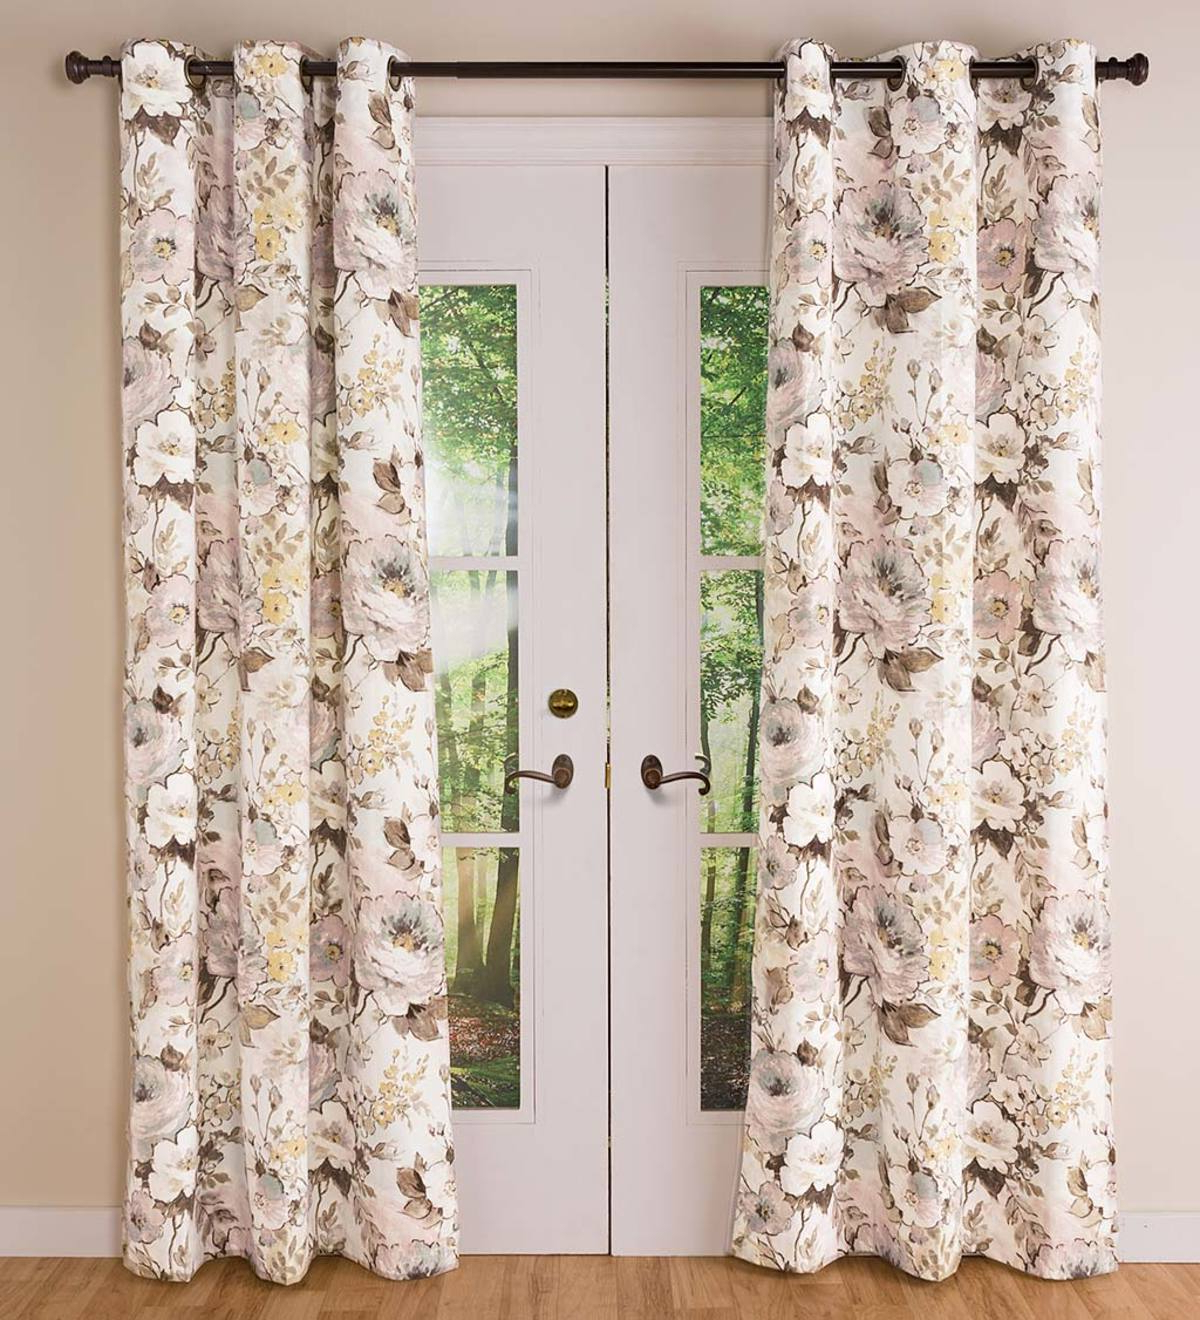 Thermalogic Insulated Bella Donna Floral Grommet Top Curtain Pairs In Current Insulated Cotton Curtain Panel Pairs (View 18 of 20)